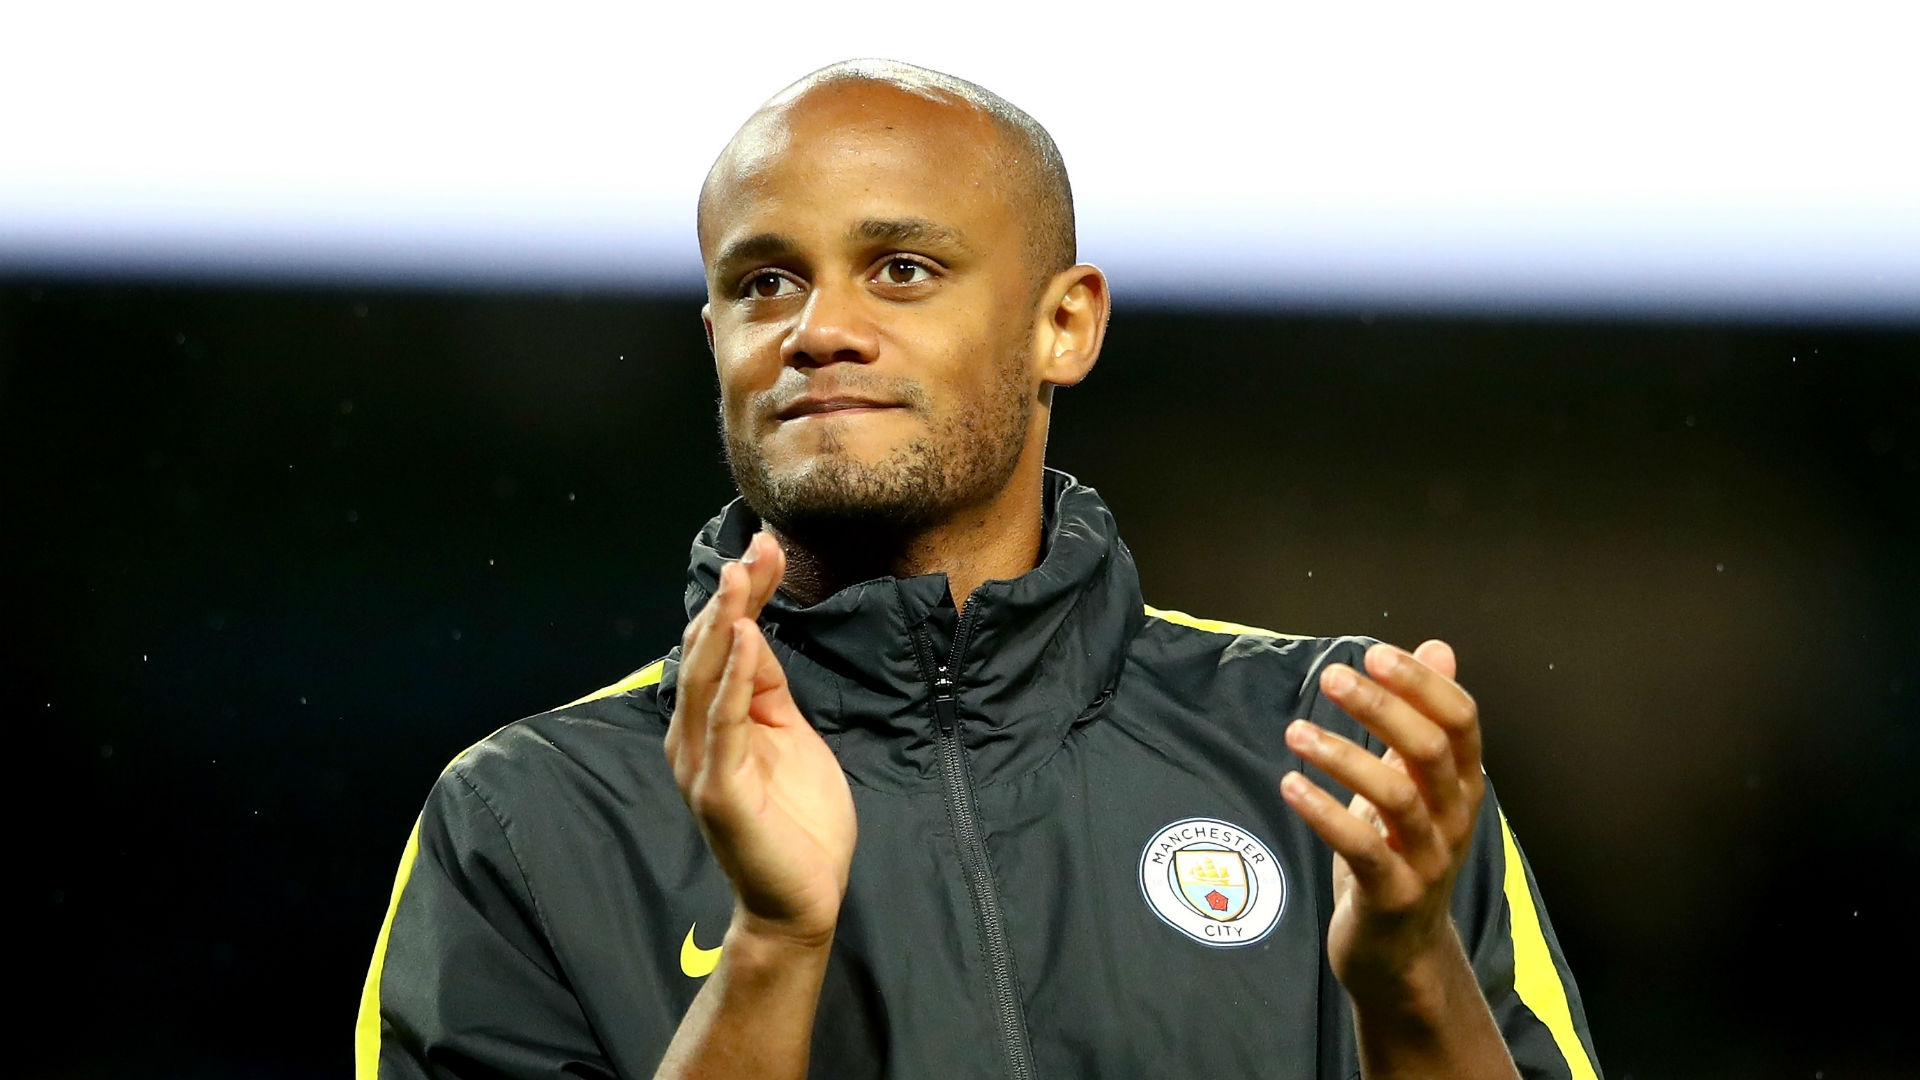 Vincent Kompany says he may retire from international football after the World Cup in 2018